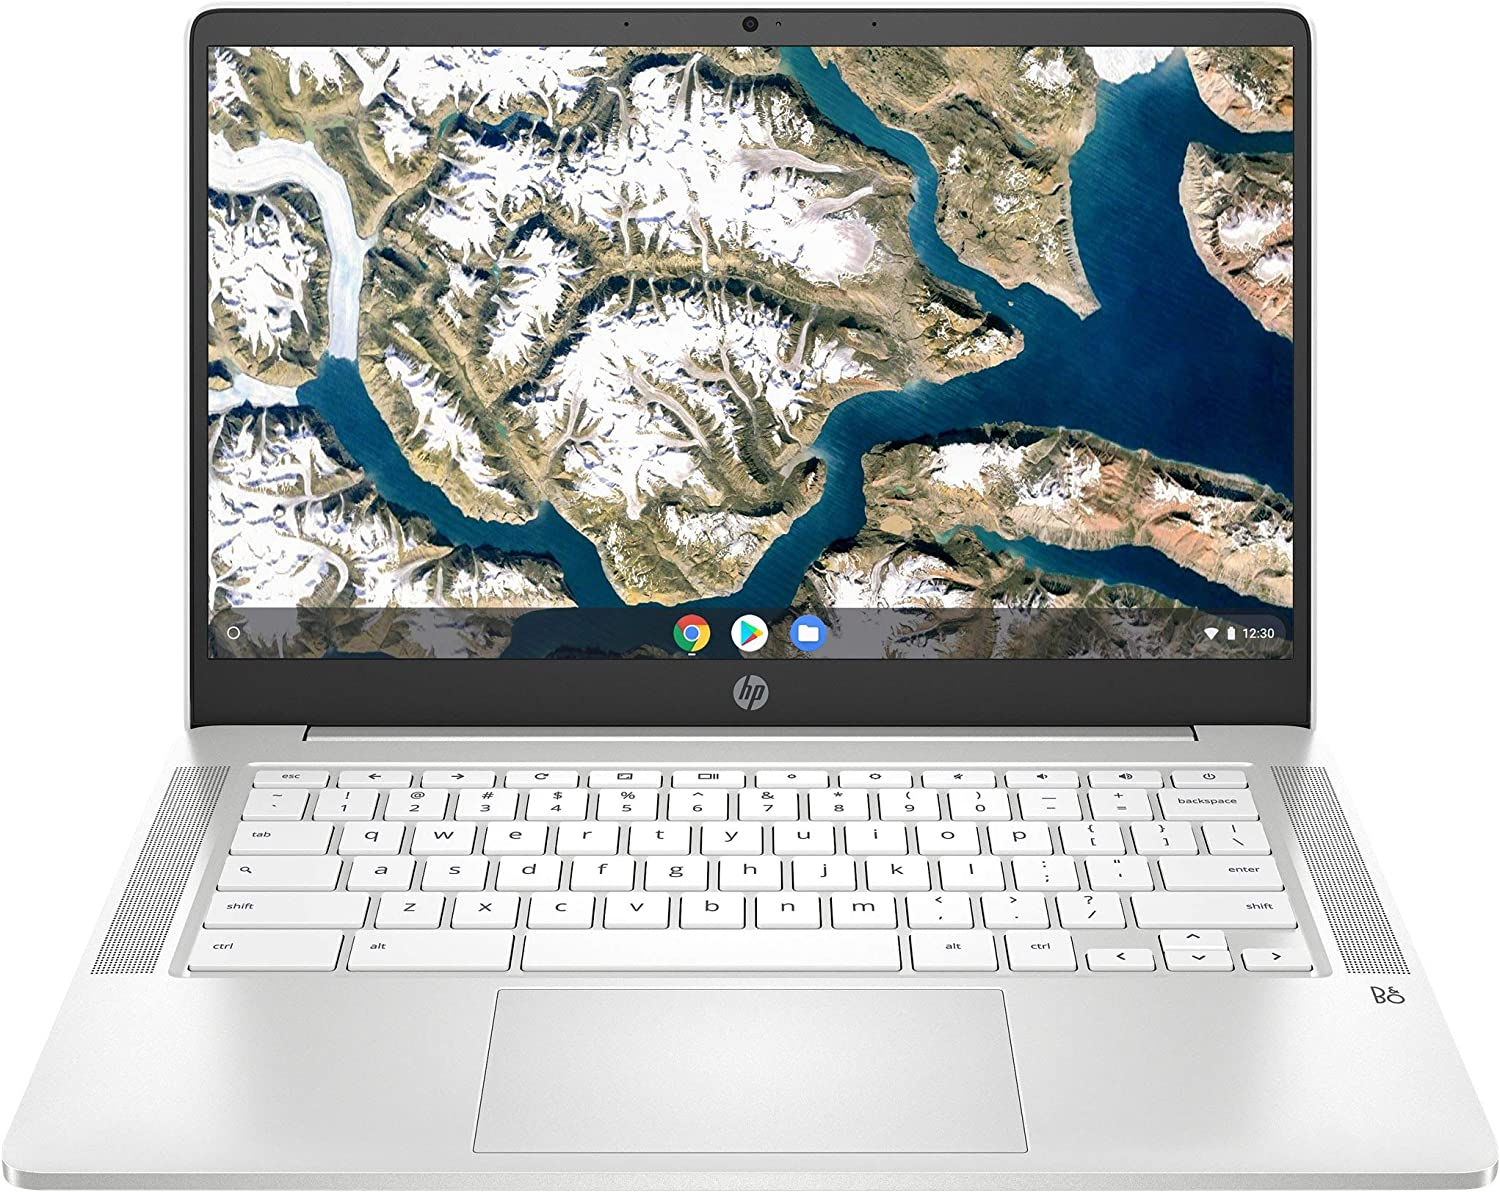 "HP Chromebook 14 14"" Laptop Computer for Education or Student/ Intel Celeron N4000 Up to 2.6GHz/ 4GB DDR4/ 32GB eMMC/ Up to 13+ Hrs Battery/ Webcam/ Online Class Ready/ Chrome OS/ iPuzzle USB-C HUB"